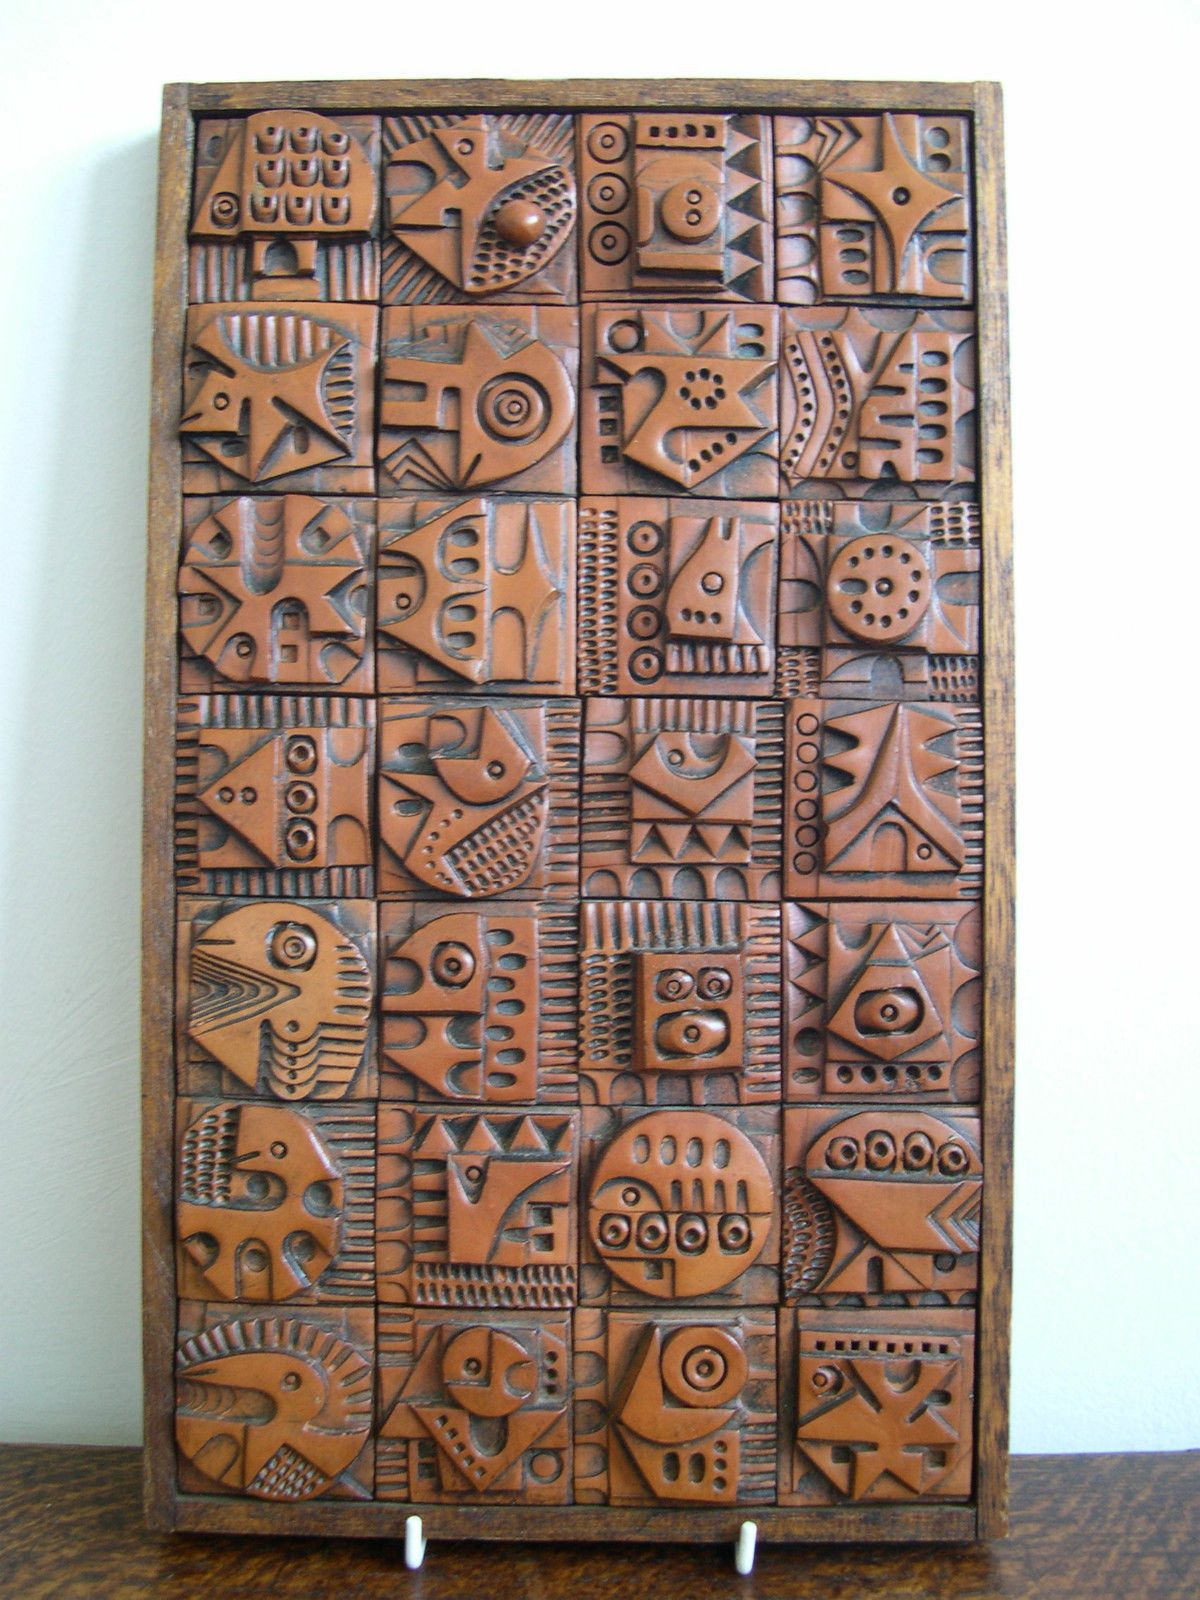 Midcentury modern ron hitchins hitchens ceramic wall panel s